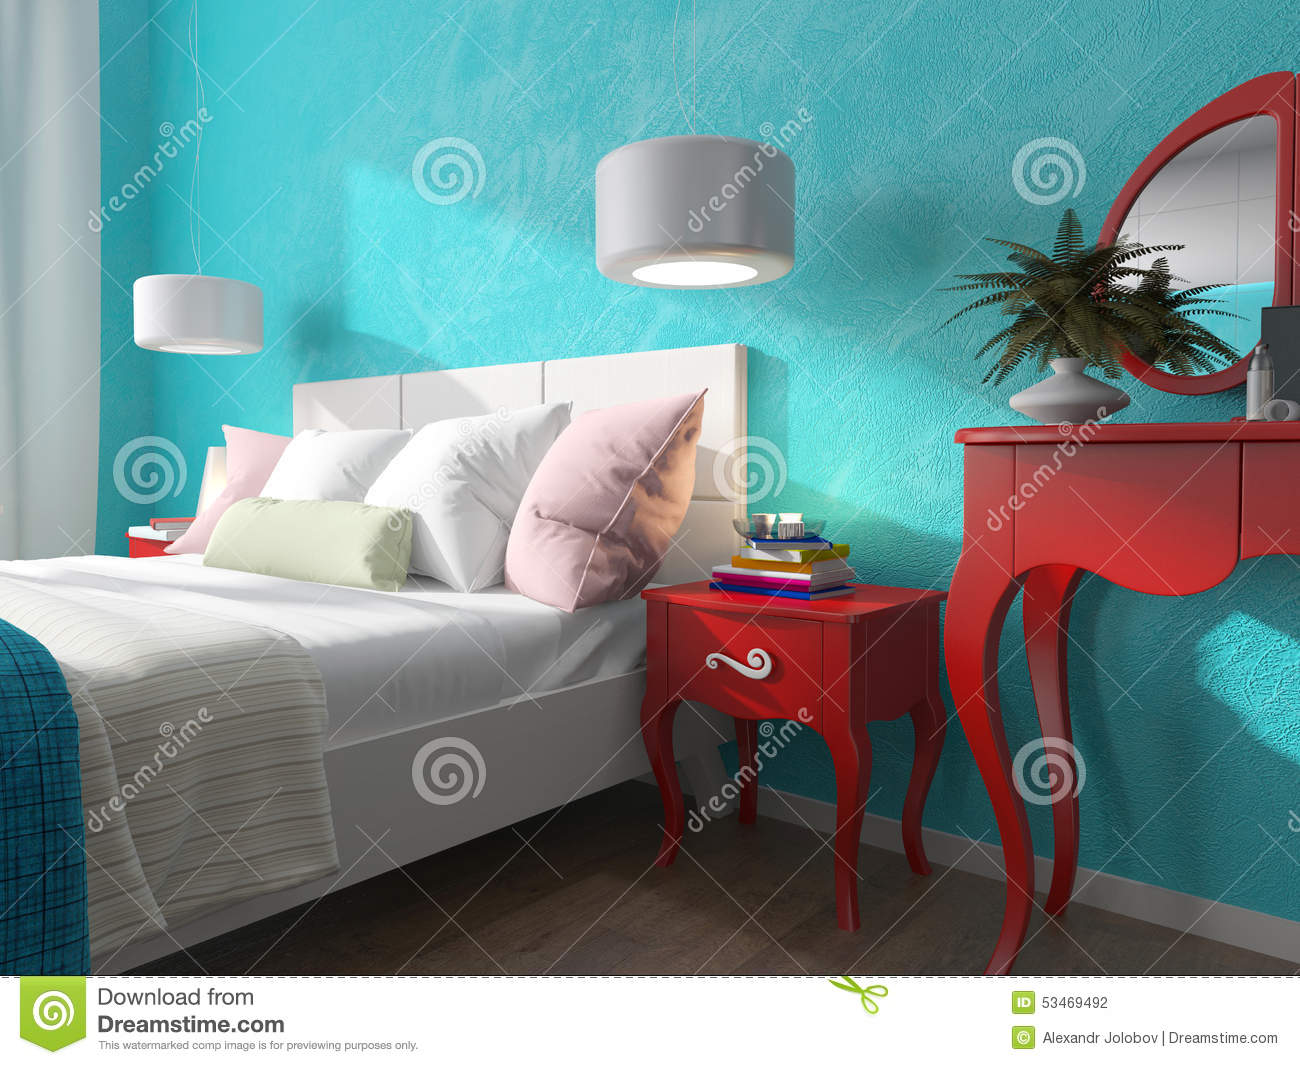 Bedroom With Turquoise Walls And Bedside Tables Stock Illustration ...